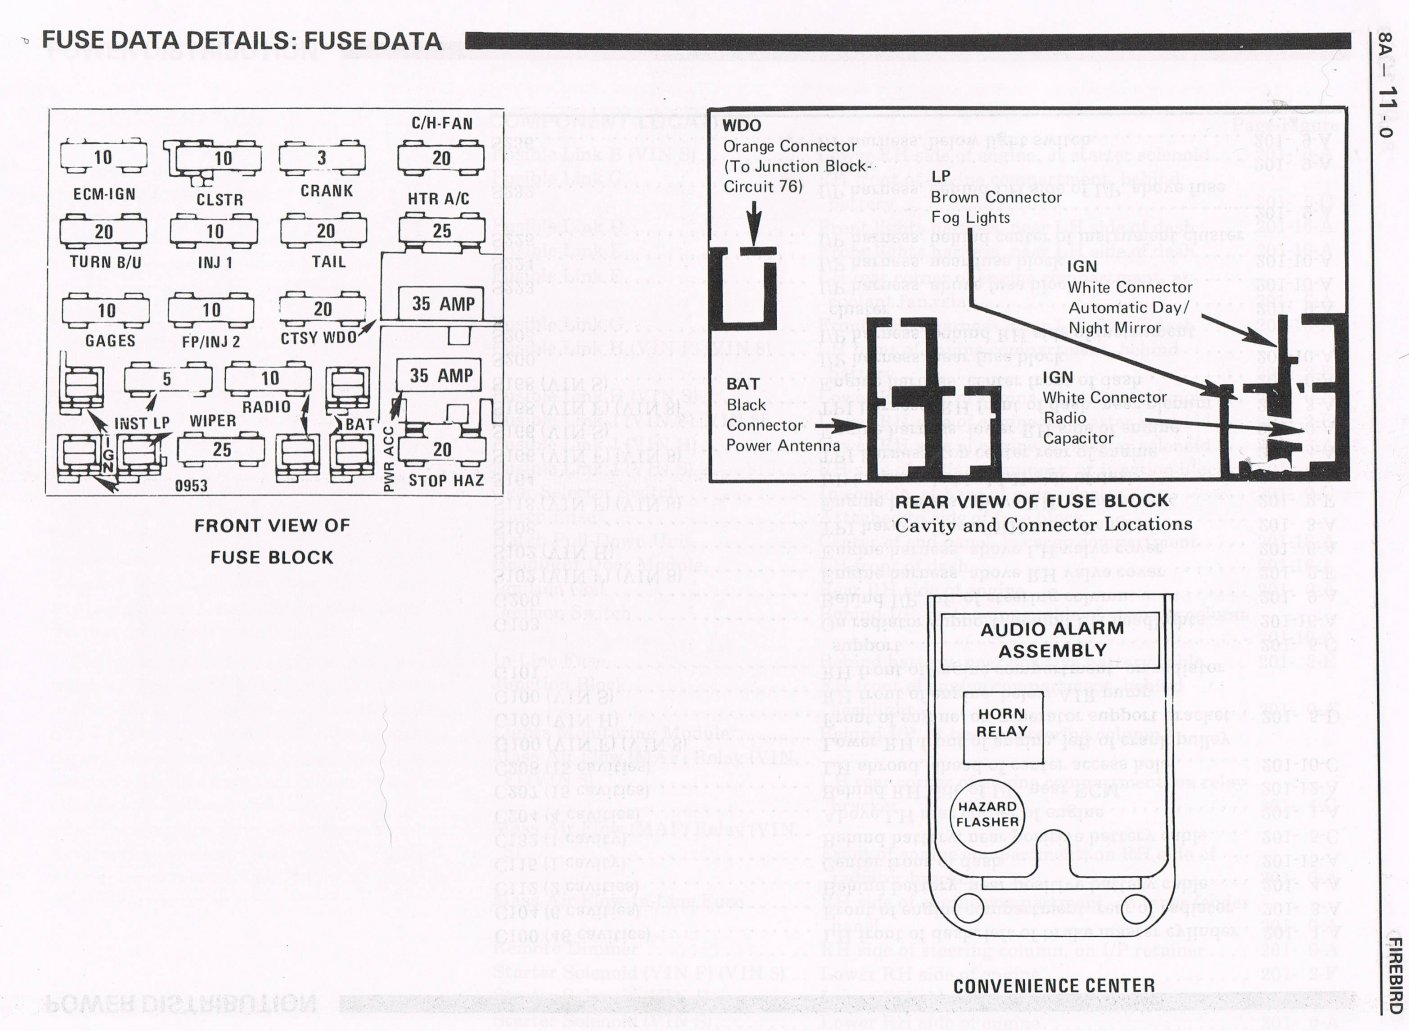 FuseFirebird87  Camaro Fuse Panel Diagram on camry fuse diagram, buick fuse diagram, dakota fuse diagram, rav4 fuse diagram, dodge fuse diagram, colorado fuse diagram, suburban fuse diagram, miata fuse diagram, focus fuse diagram, impala fuse diagram, transit connect fuse diagram, altima fuse diagram, automotive fuse diagram, acadia fuse diagram, solstice fuse diagram, liberty fuse diagram, ranger fuse diagram, jaguar fuse diagram, s10 fuse diagram, durango fuse diagram,